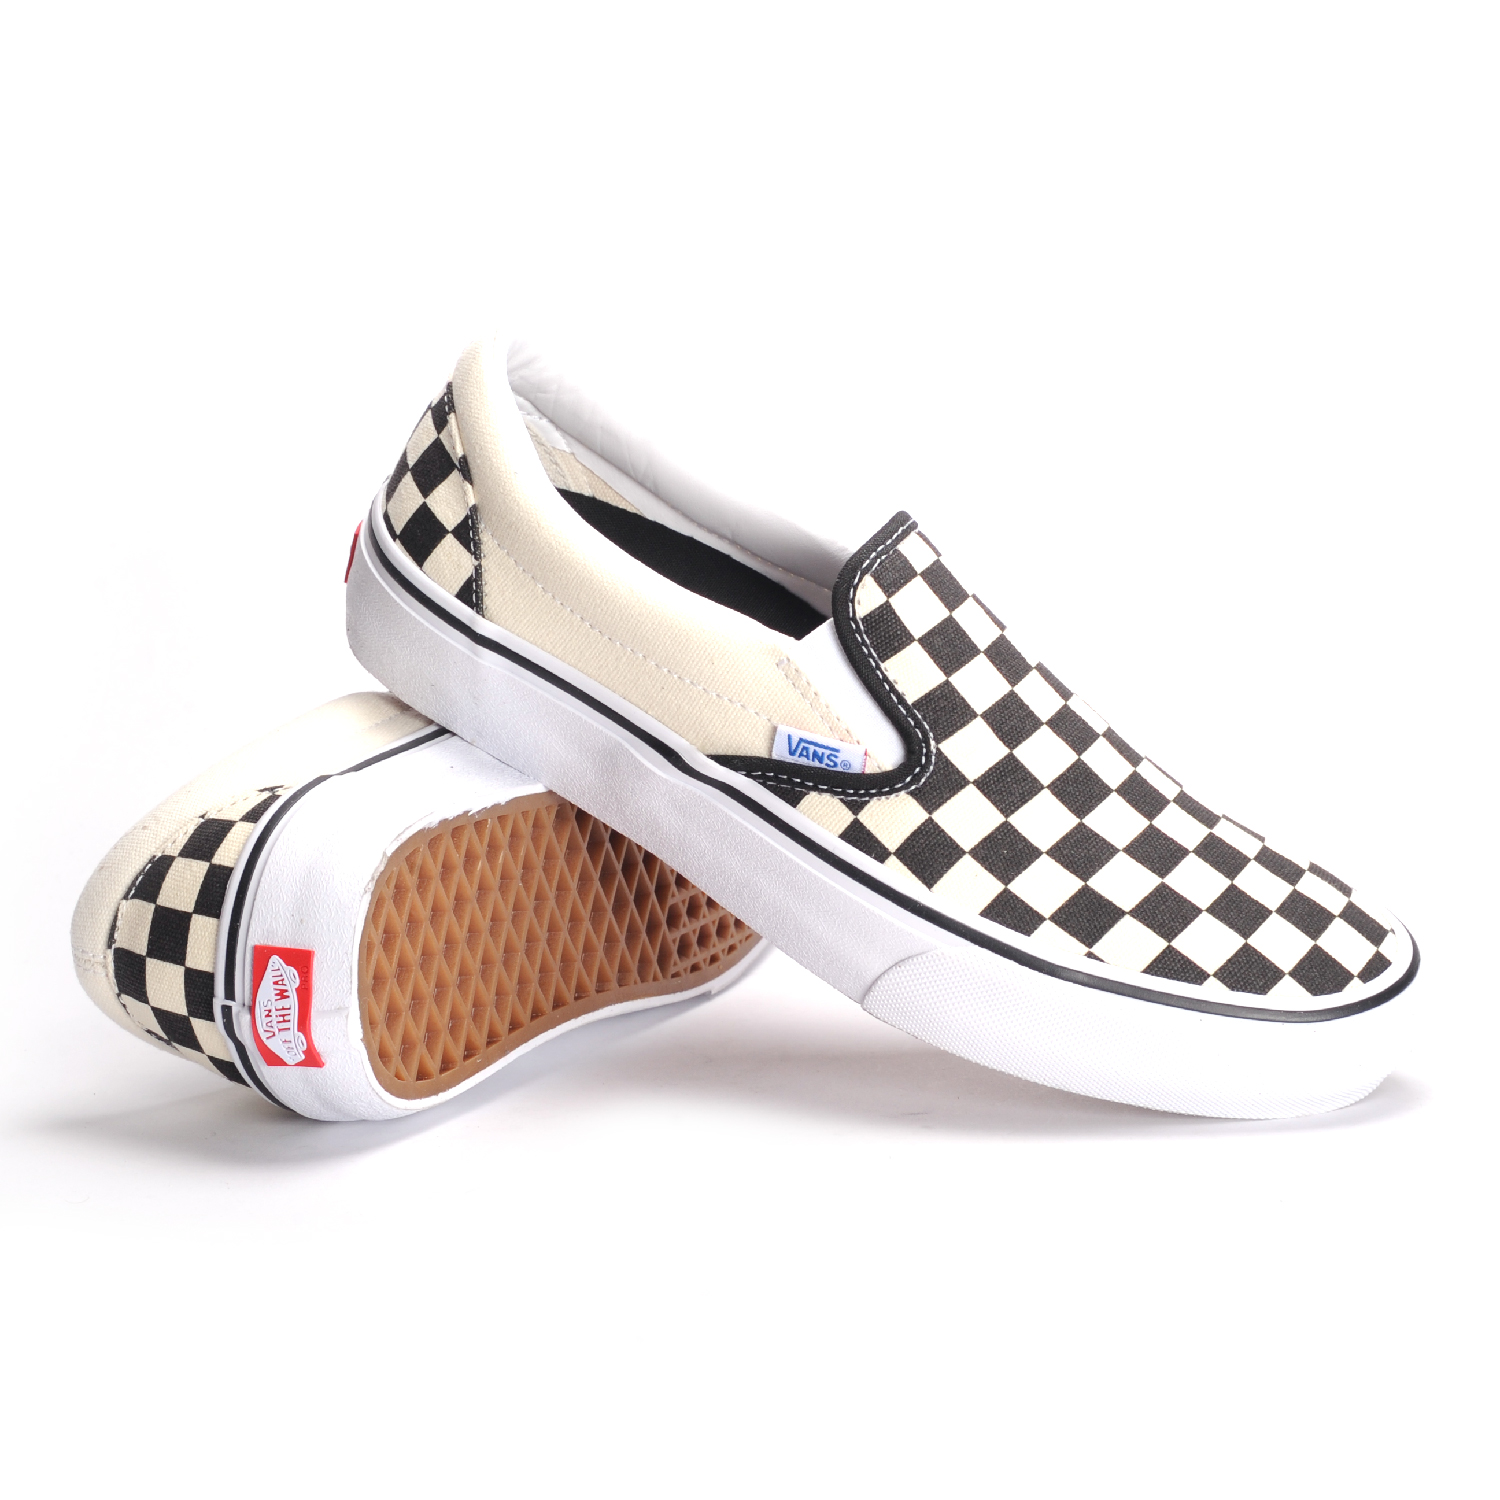 Vans Shoes Reduced